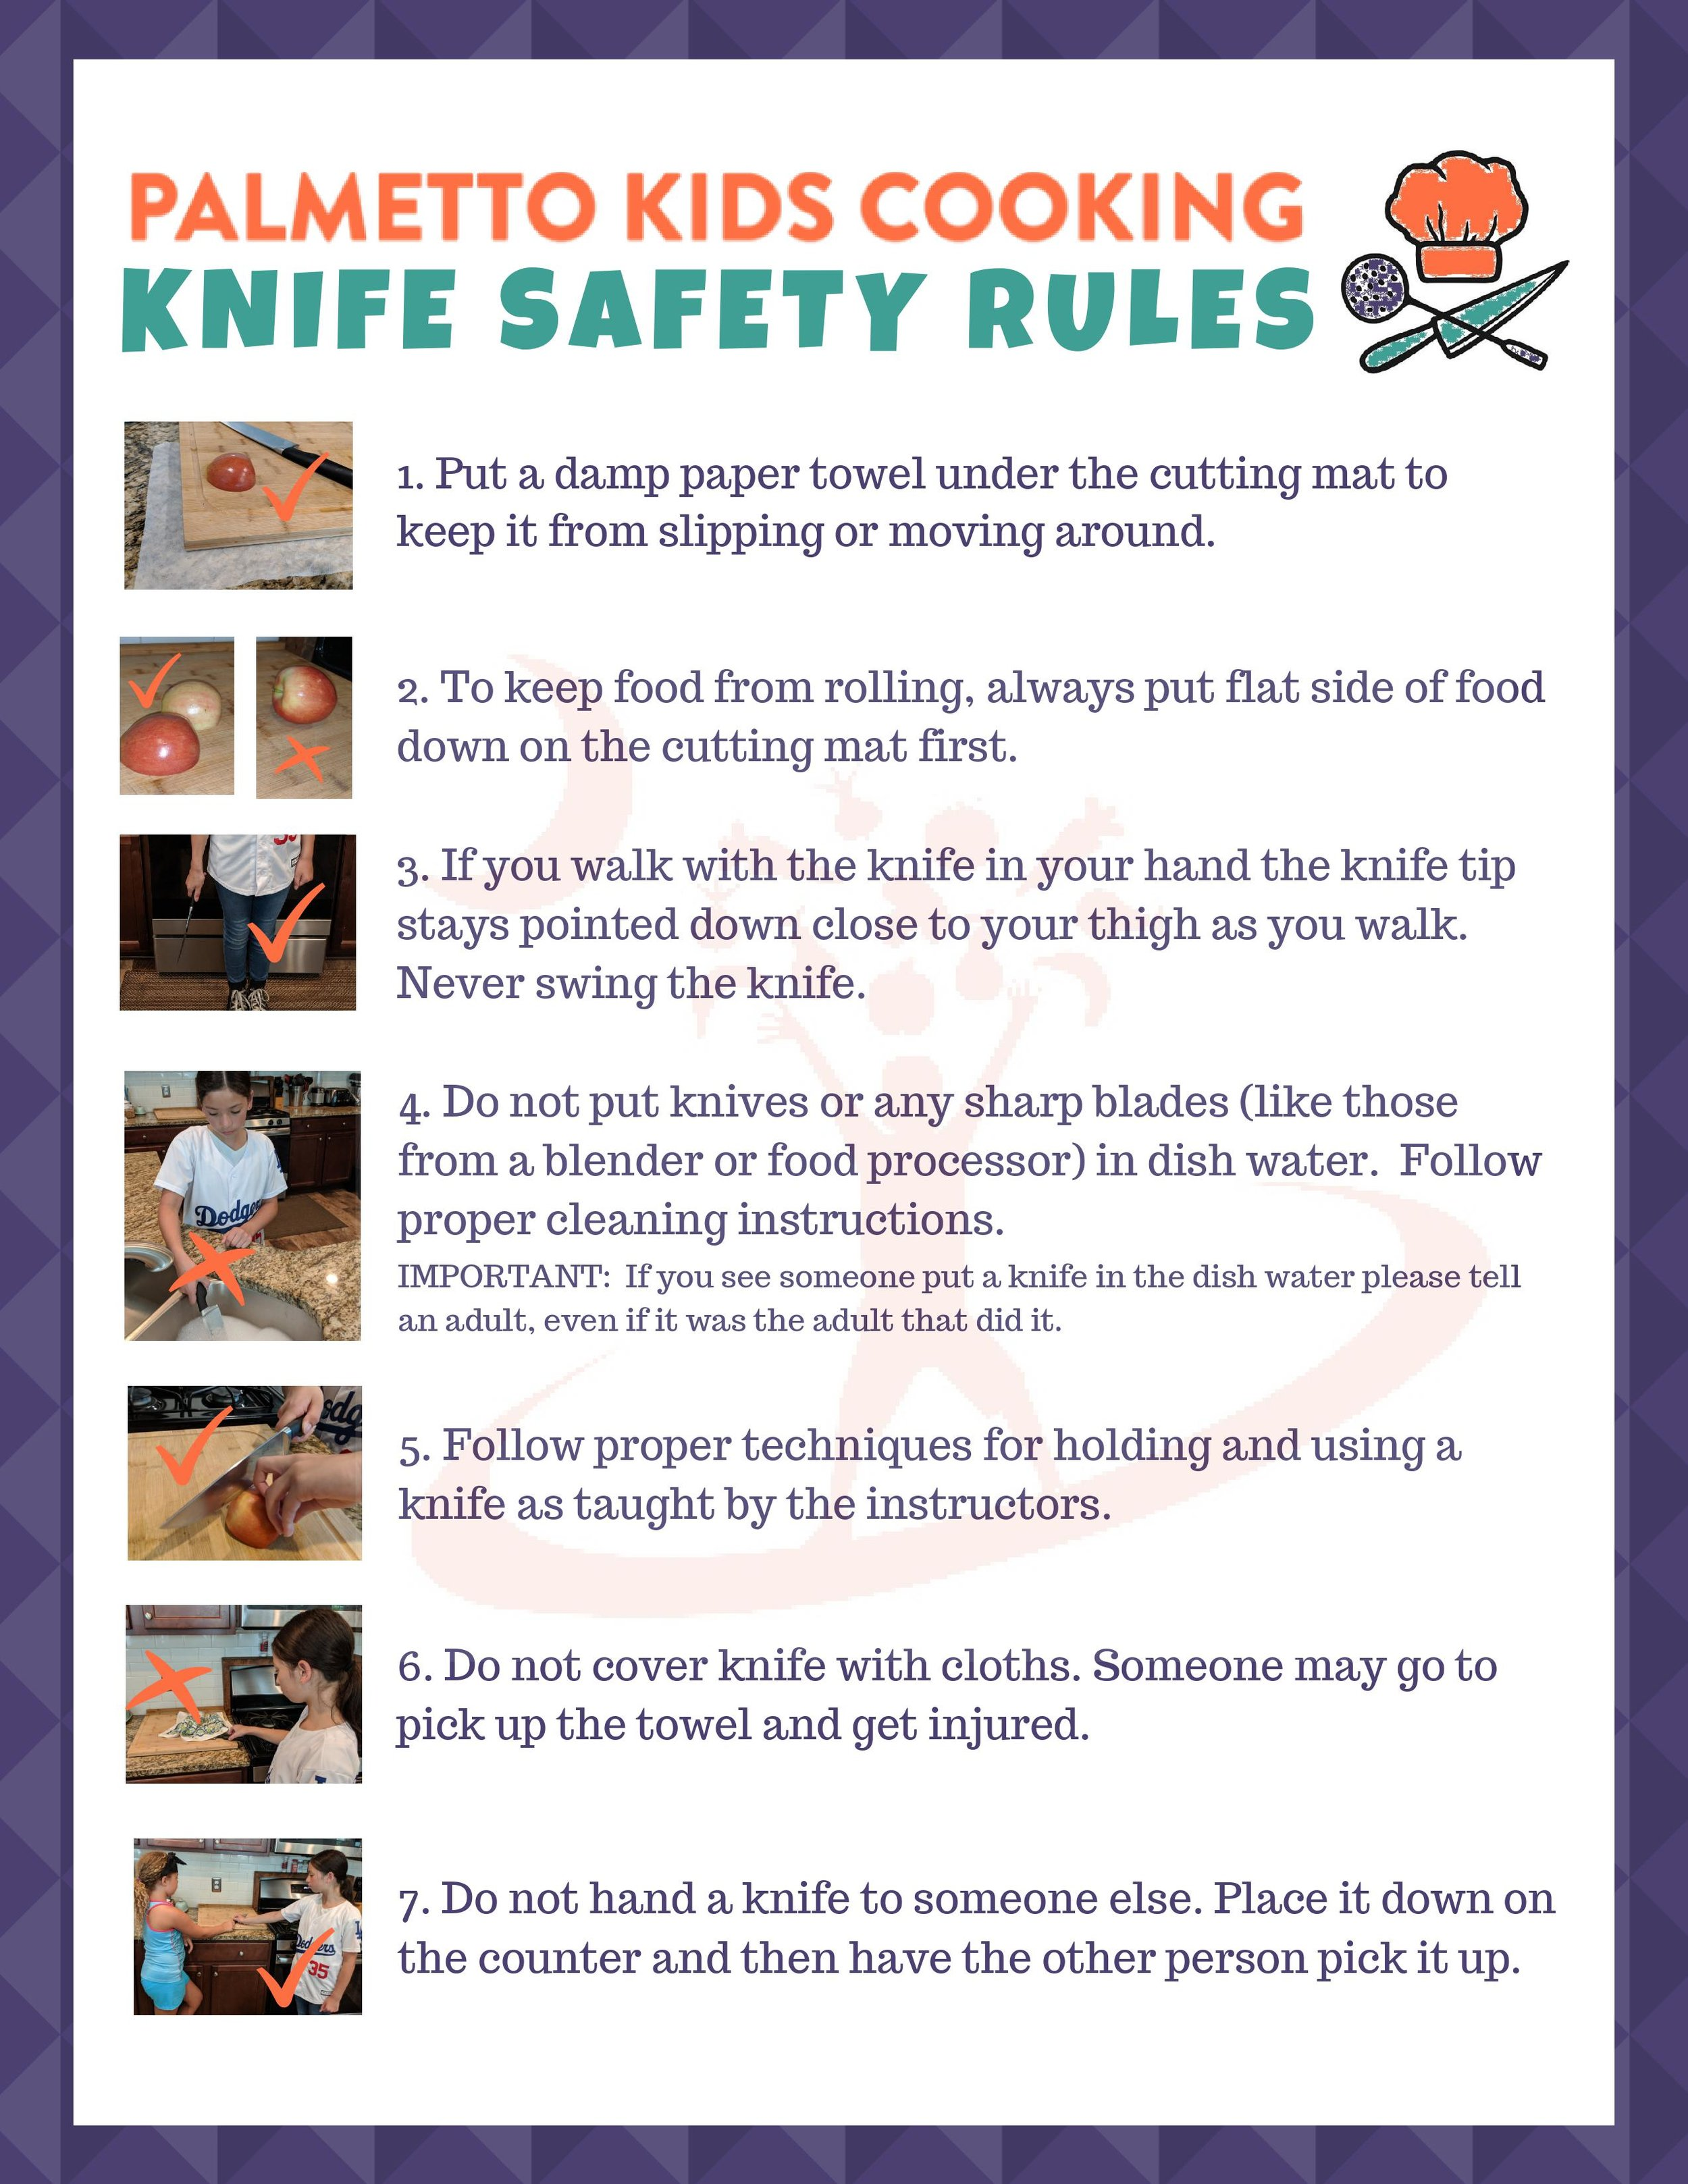 Kitchen and Knife Safety Rules (3).jpg